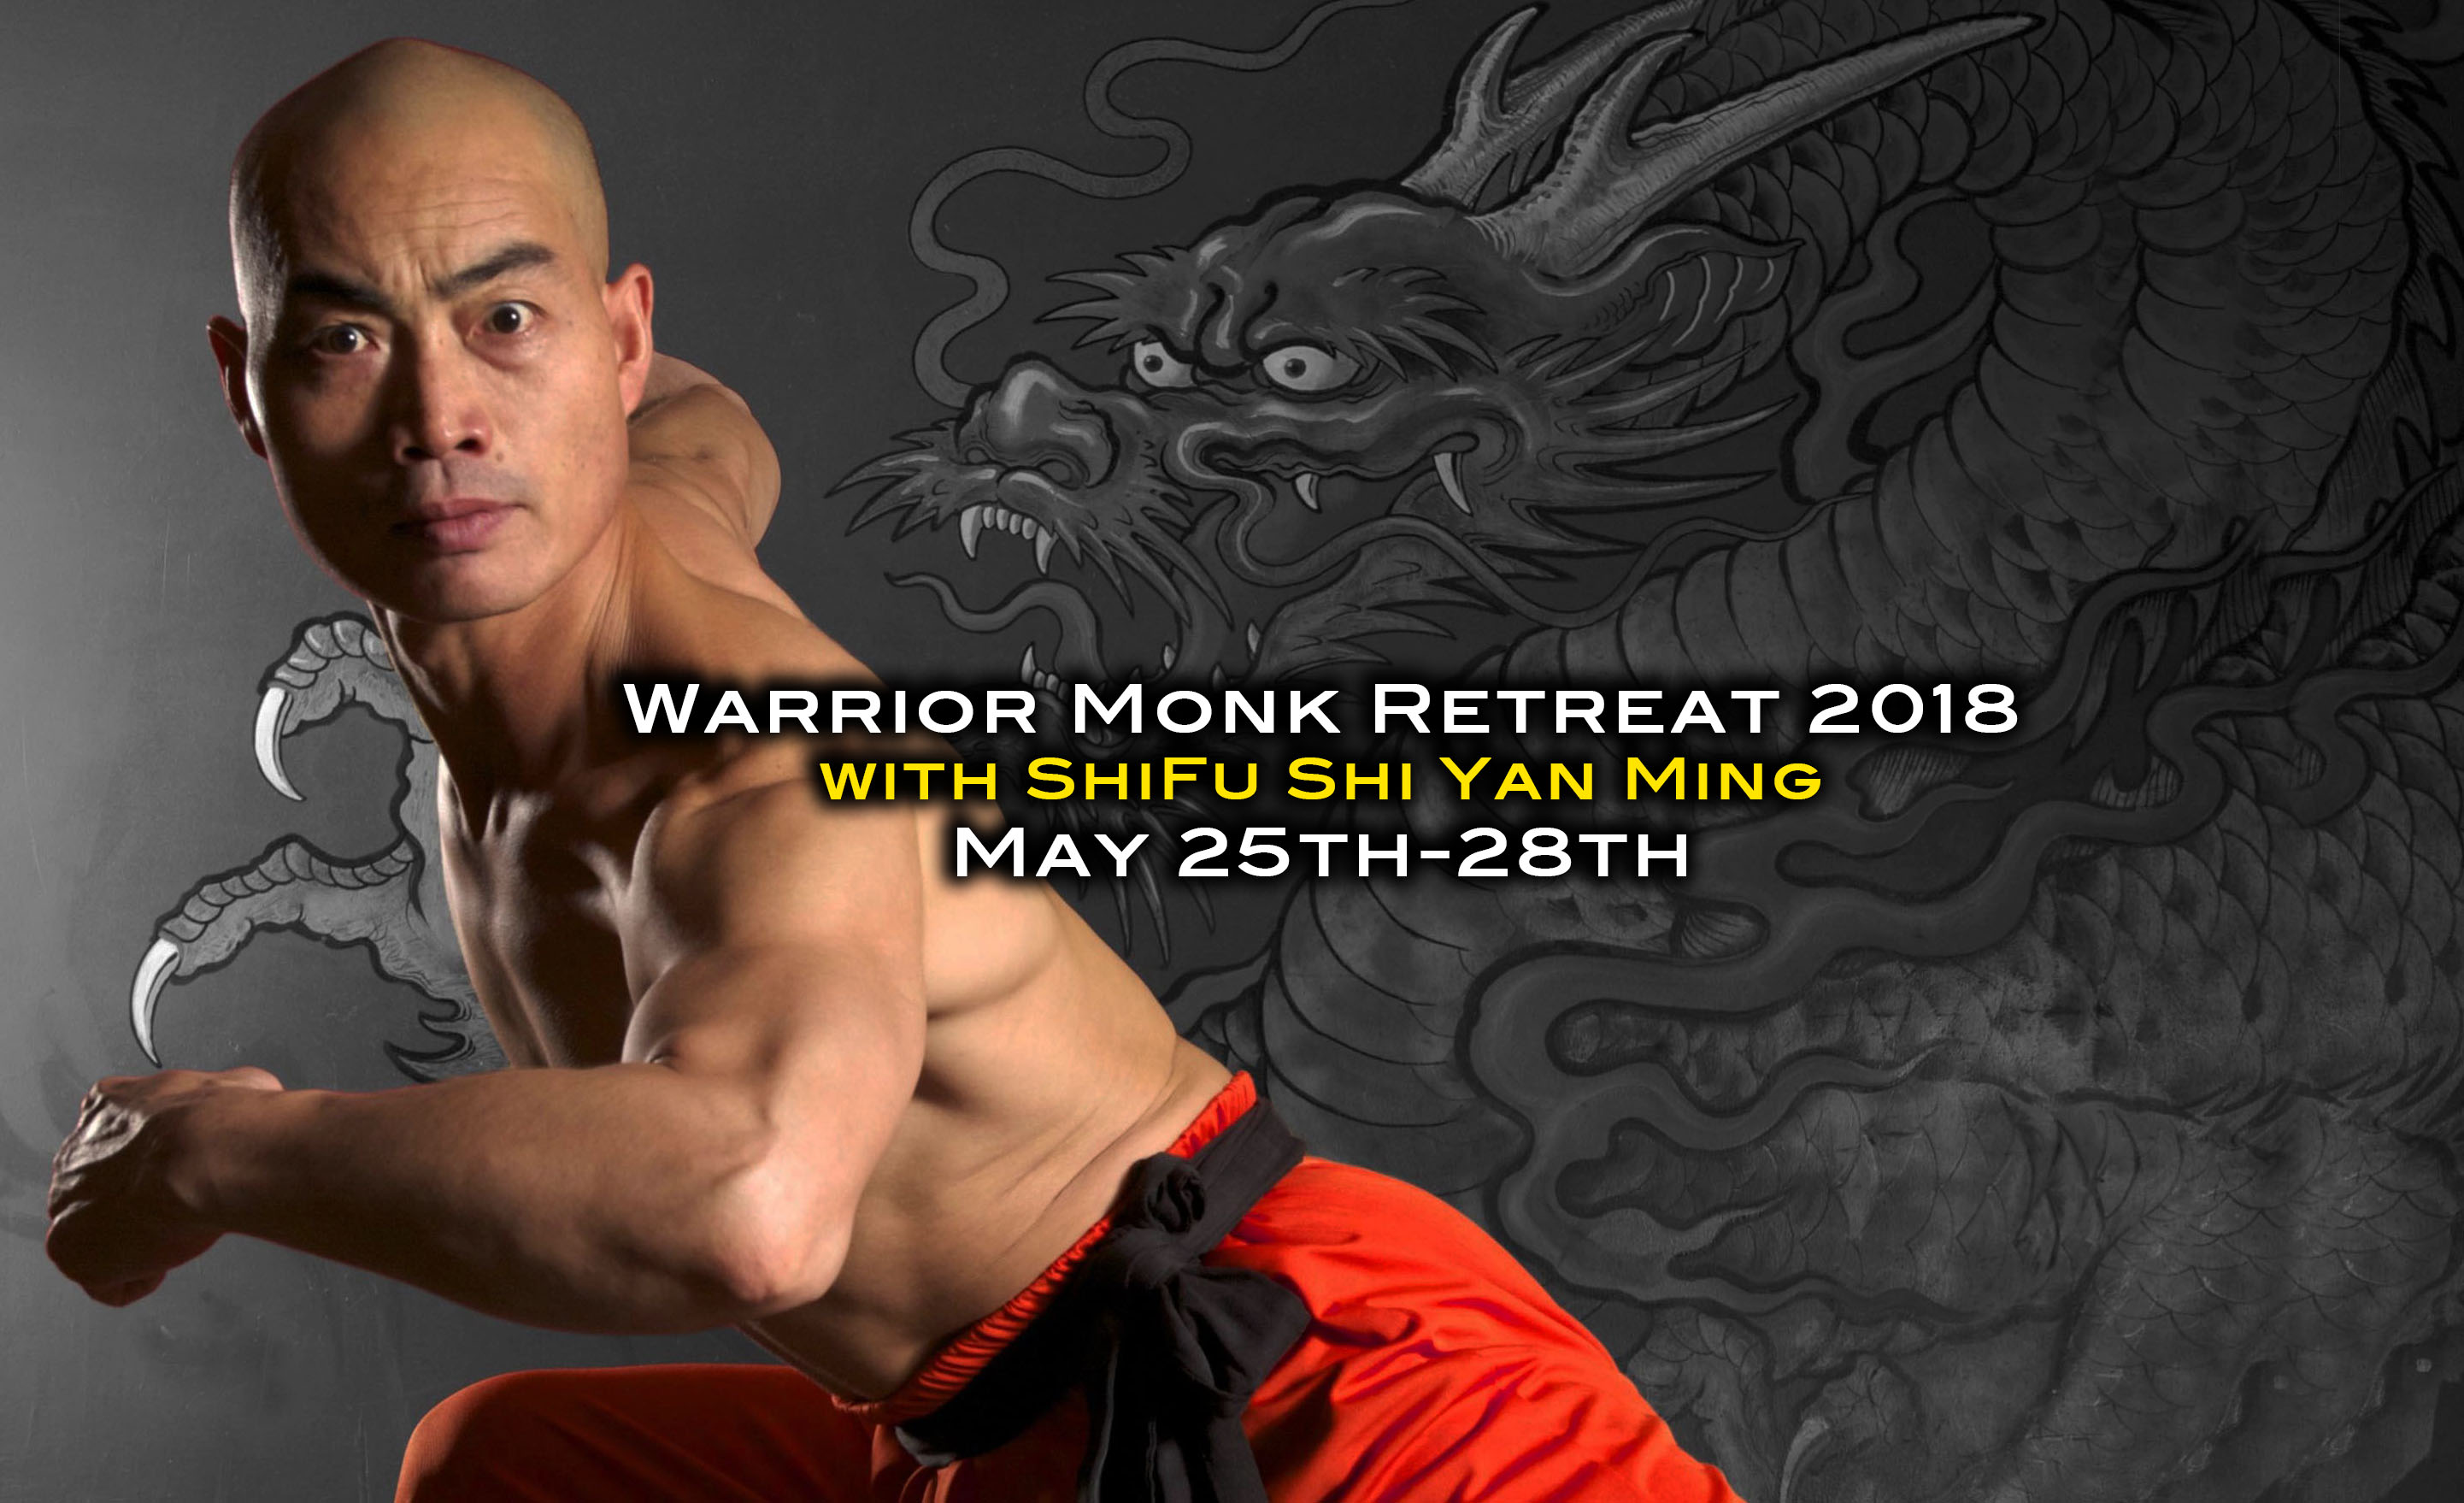 Warrior Monk Retreat 2018 with ShiFu Shi Yan Ming